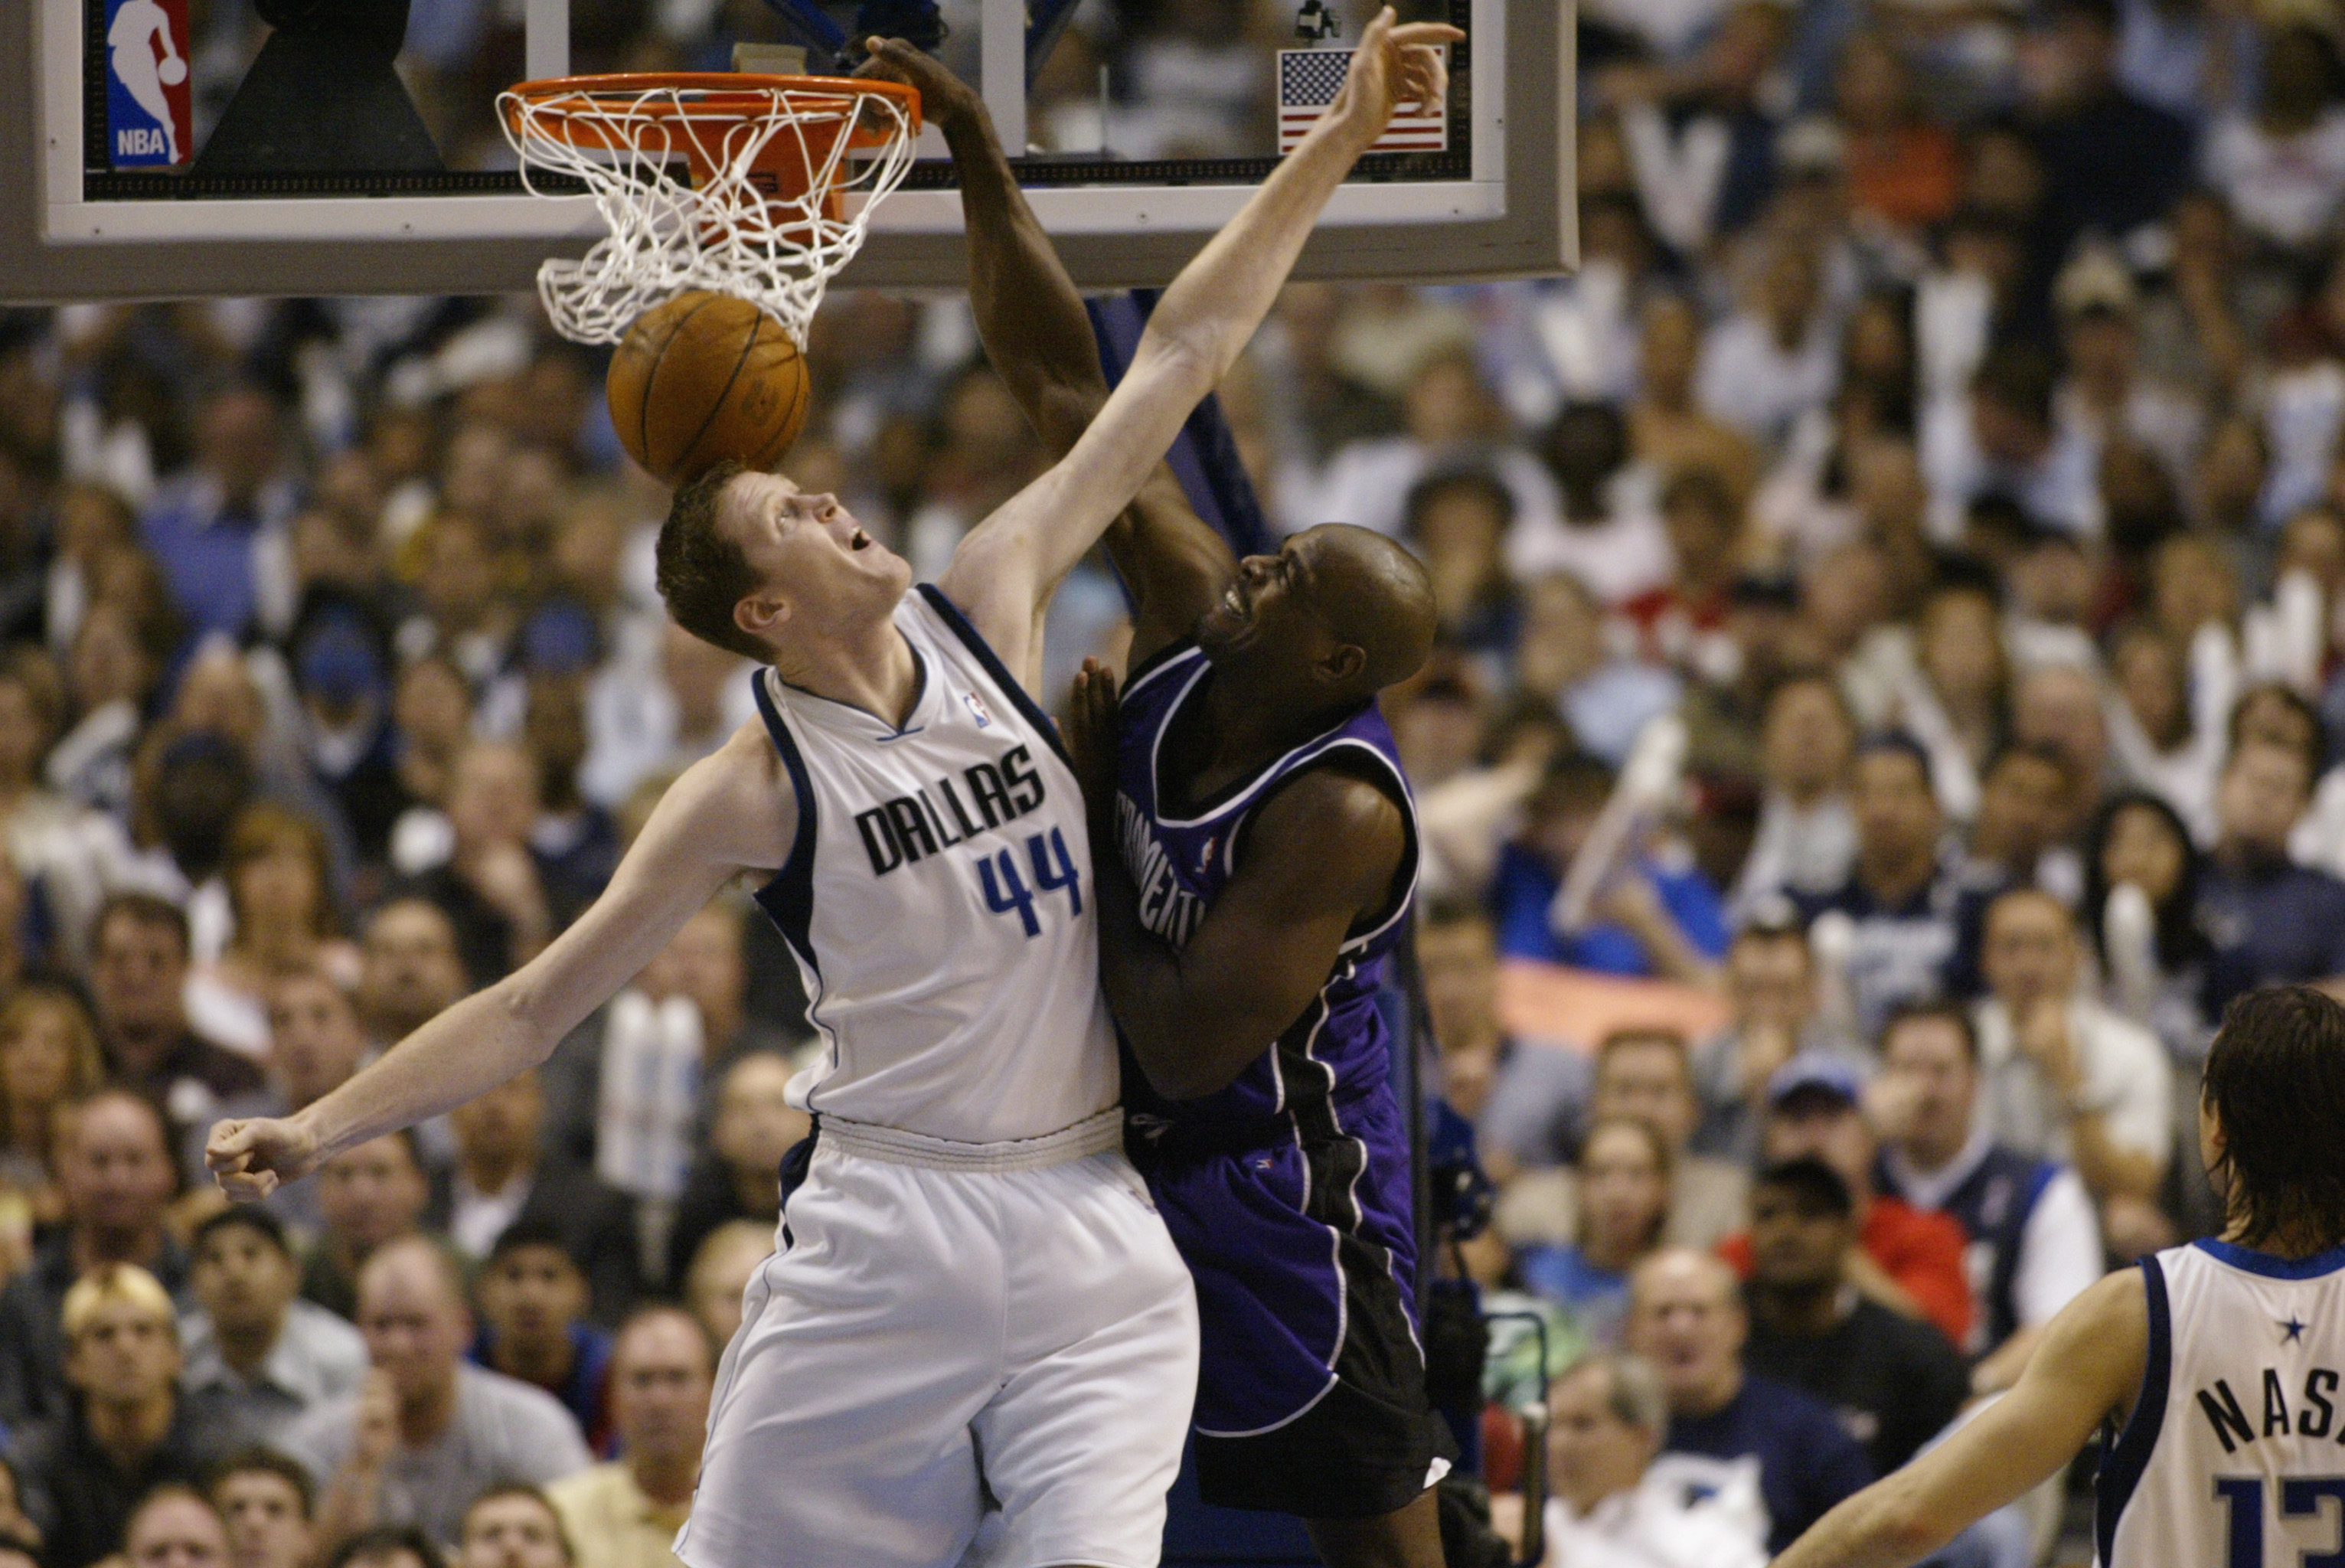 298862e66b8 Shawn Bradley and the 25 Biggest Targets of High-Flying NBA Dunkers ...